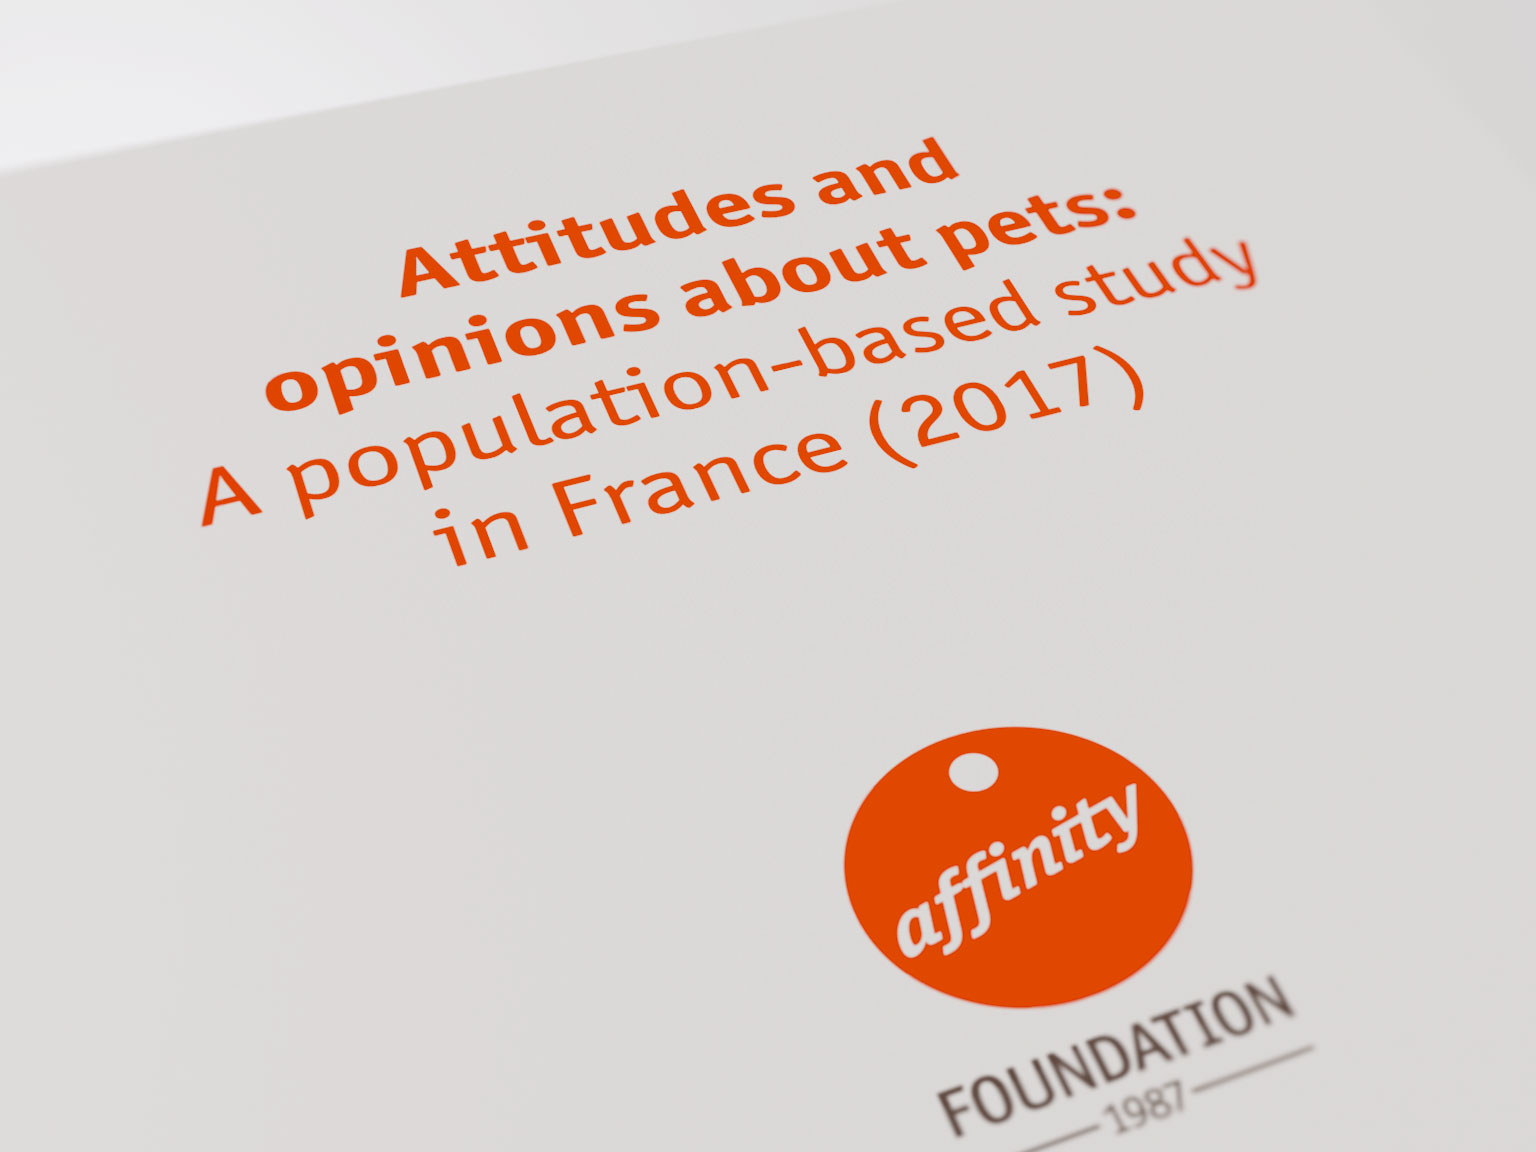 Attitudes and opinions about pets: A population-based study in France (2017)